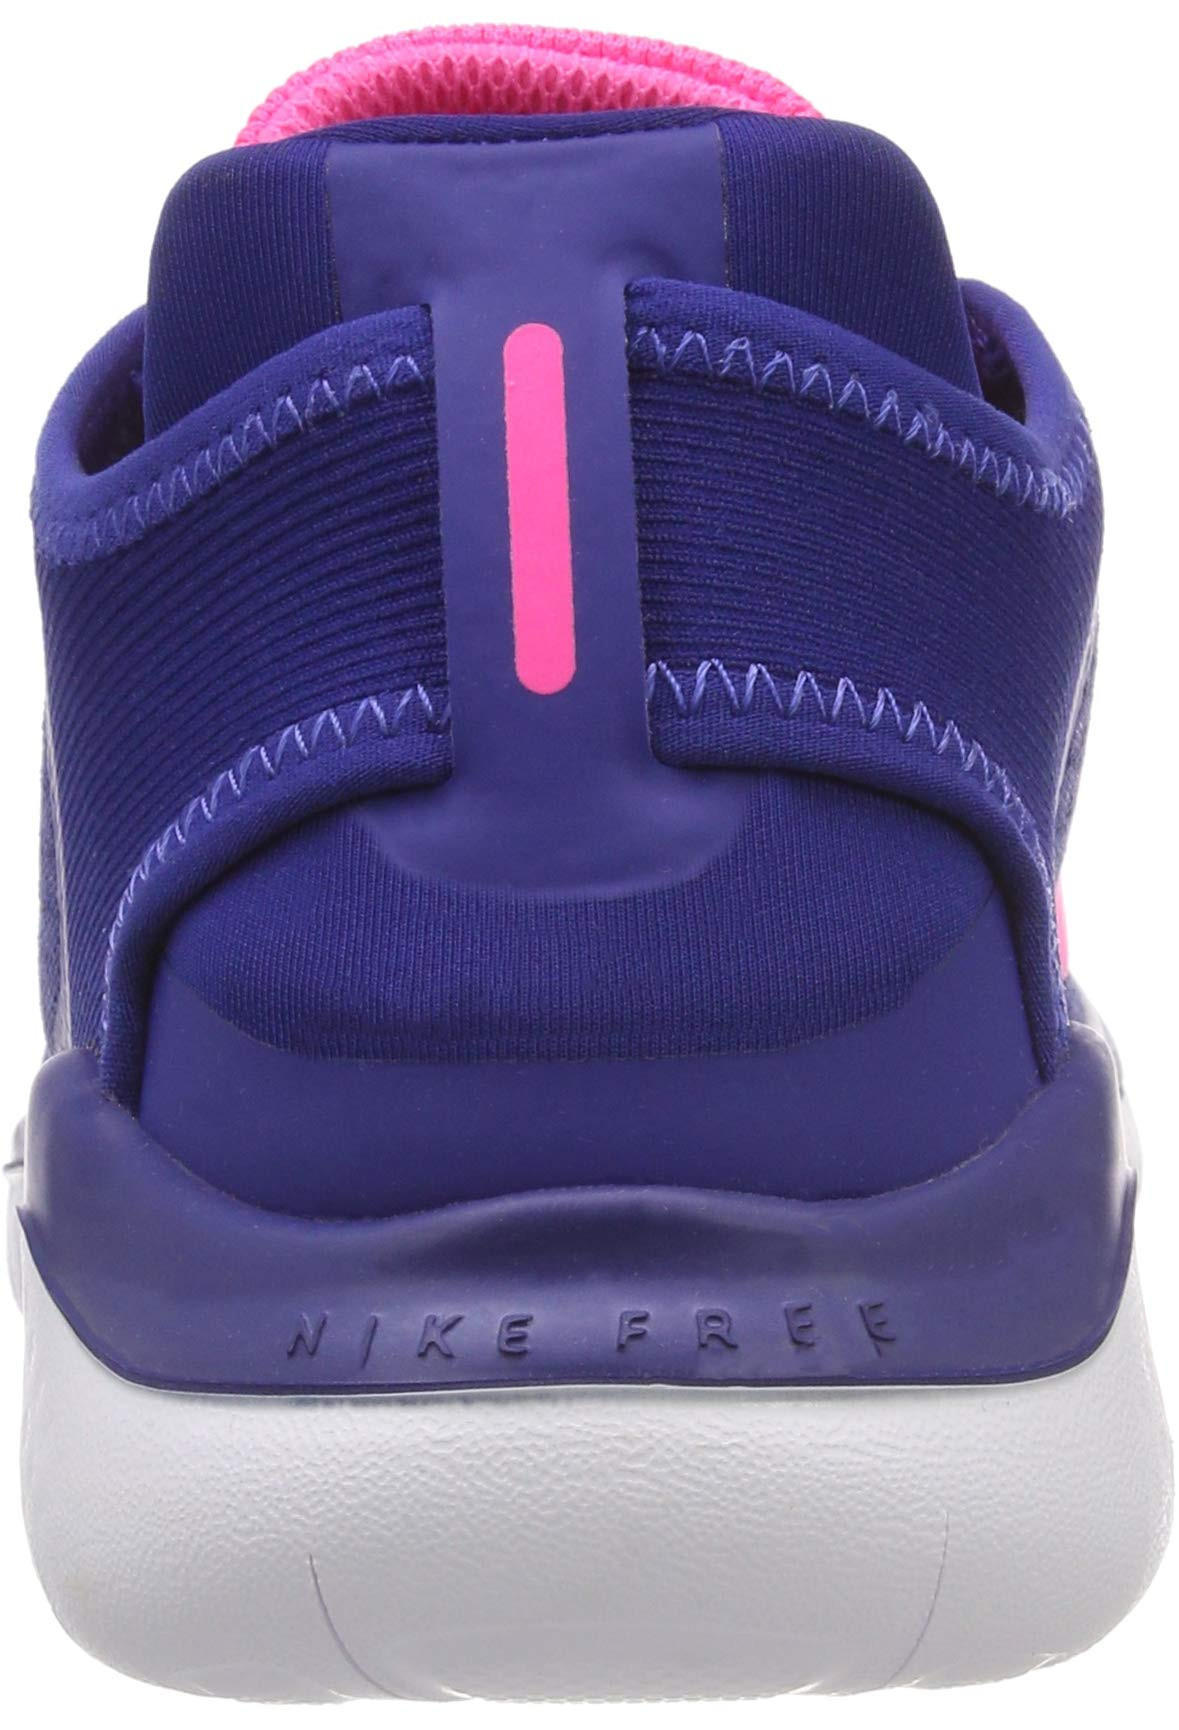 718CpuwjdFL - Nike Women's Free 2018 Competition Running Shoes